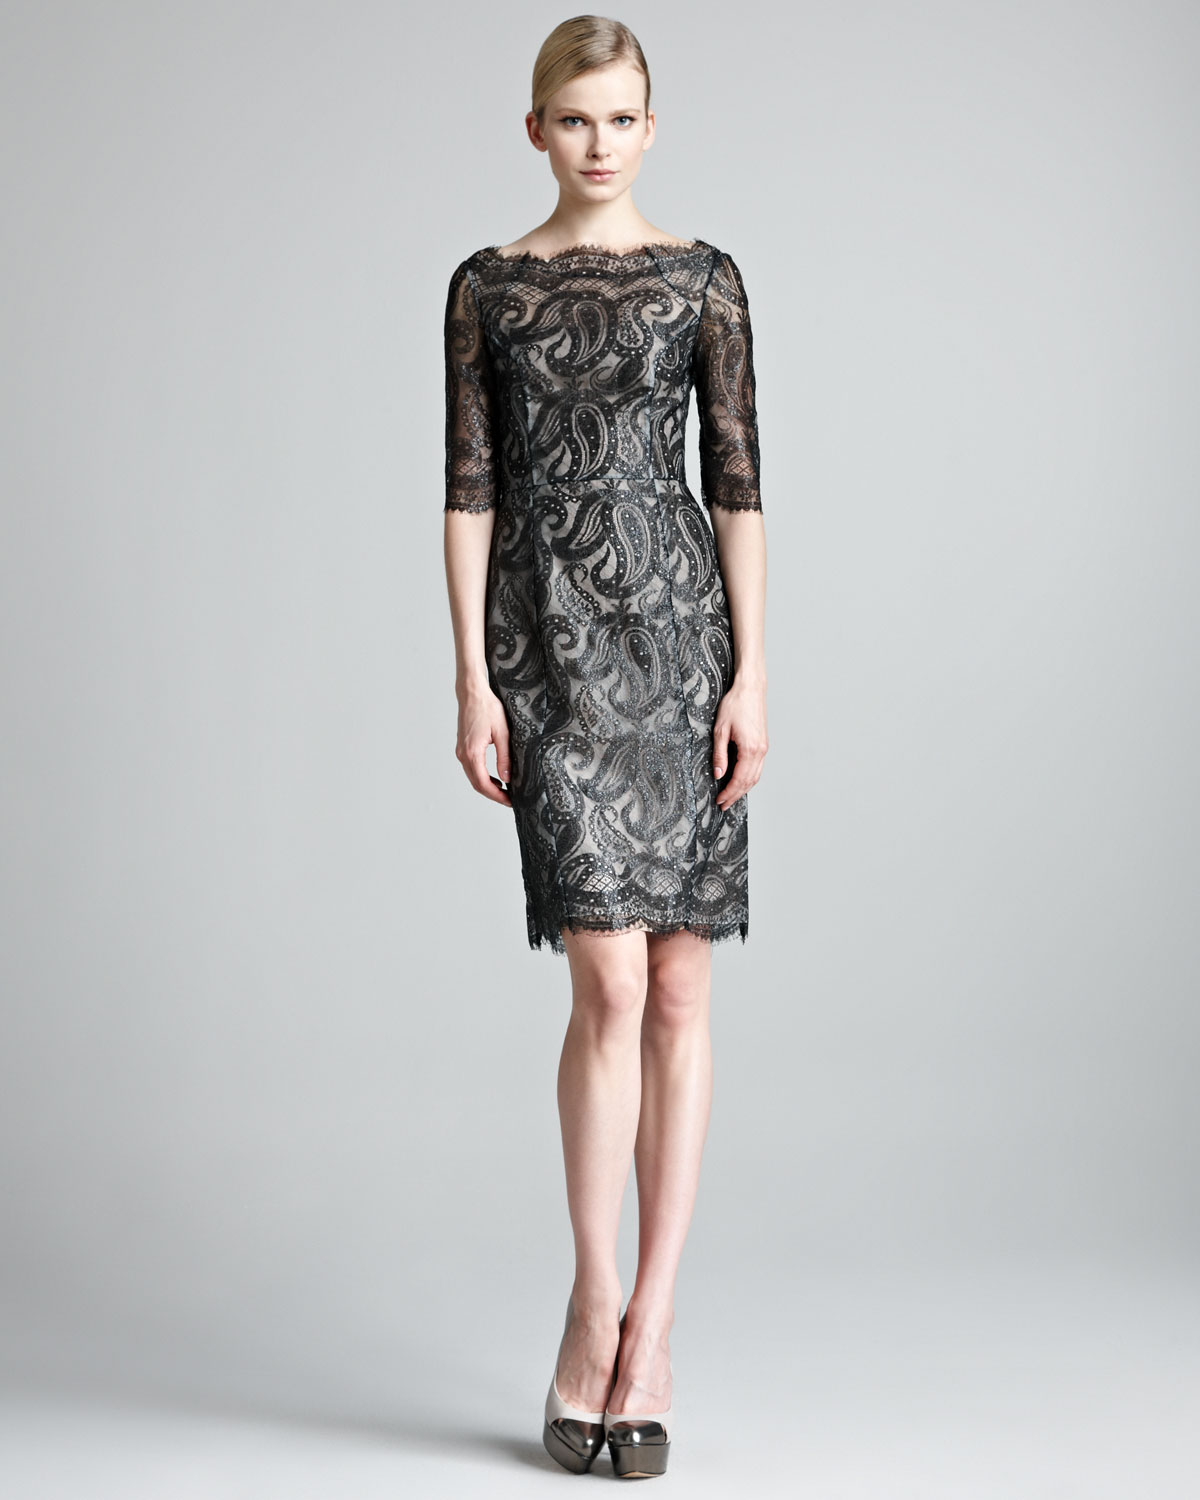 Erdem Lacquered Paisley Lace Dress In Black